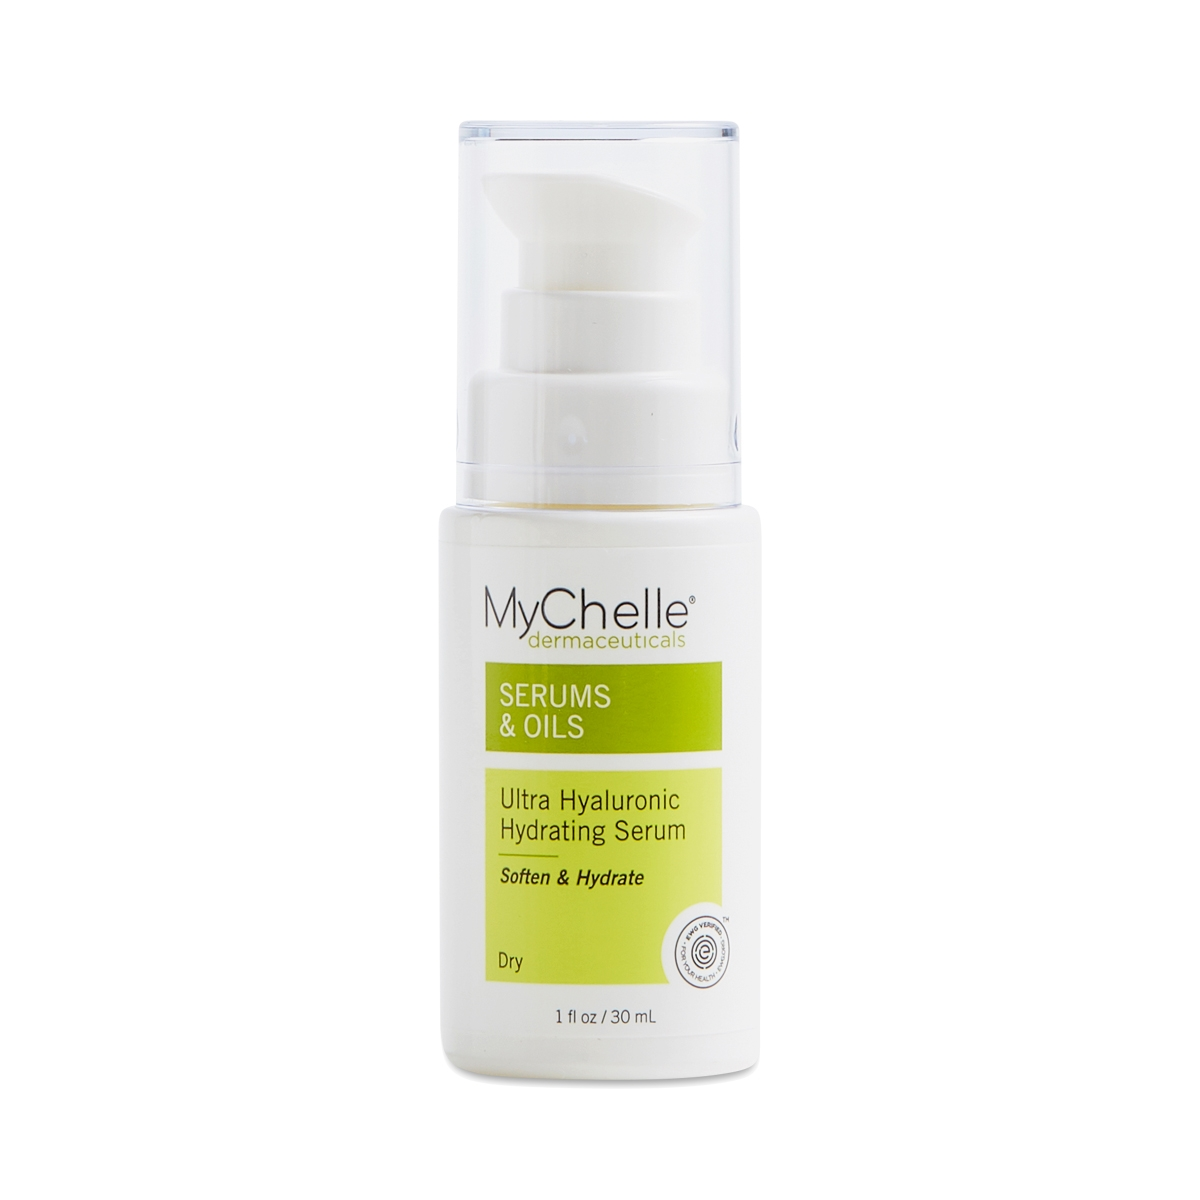 8742d5050fb Ultra Hyaluronic Hydrating Serum by Mychelle - Thrive Market